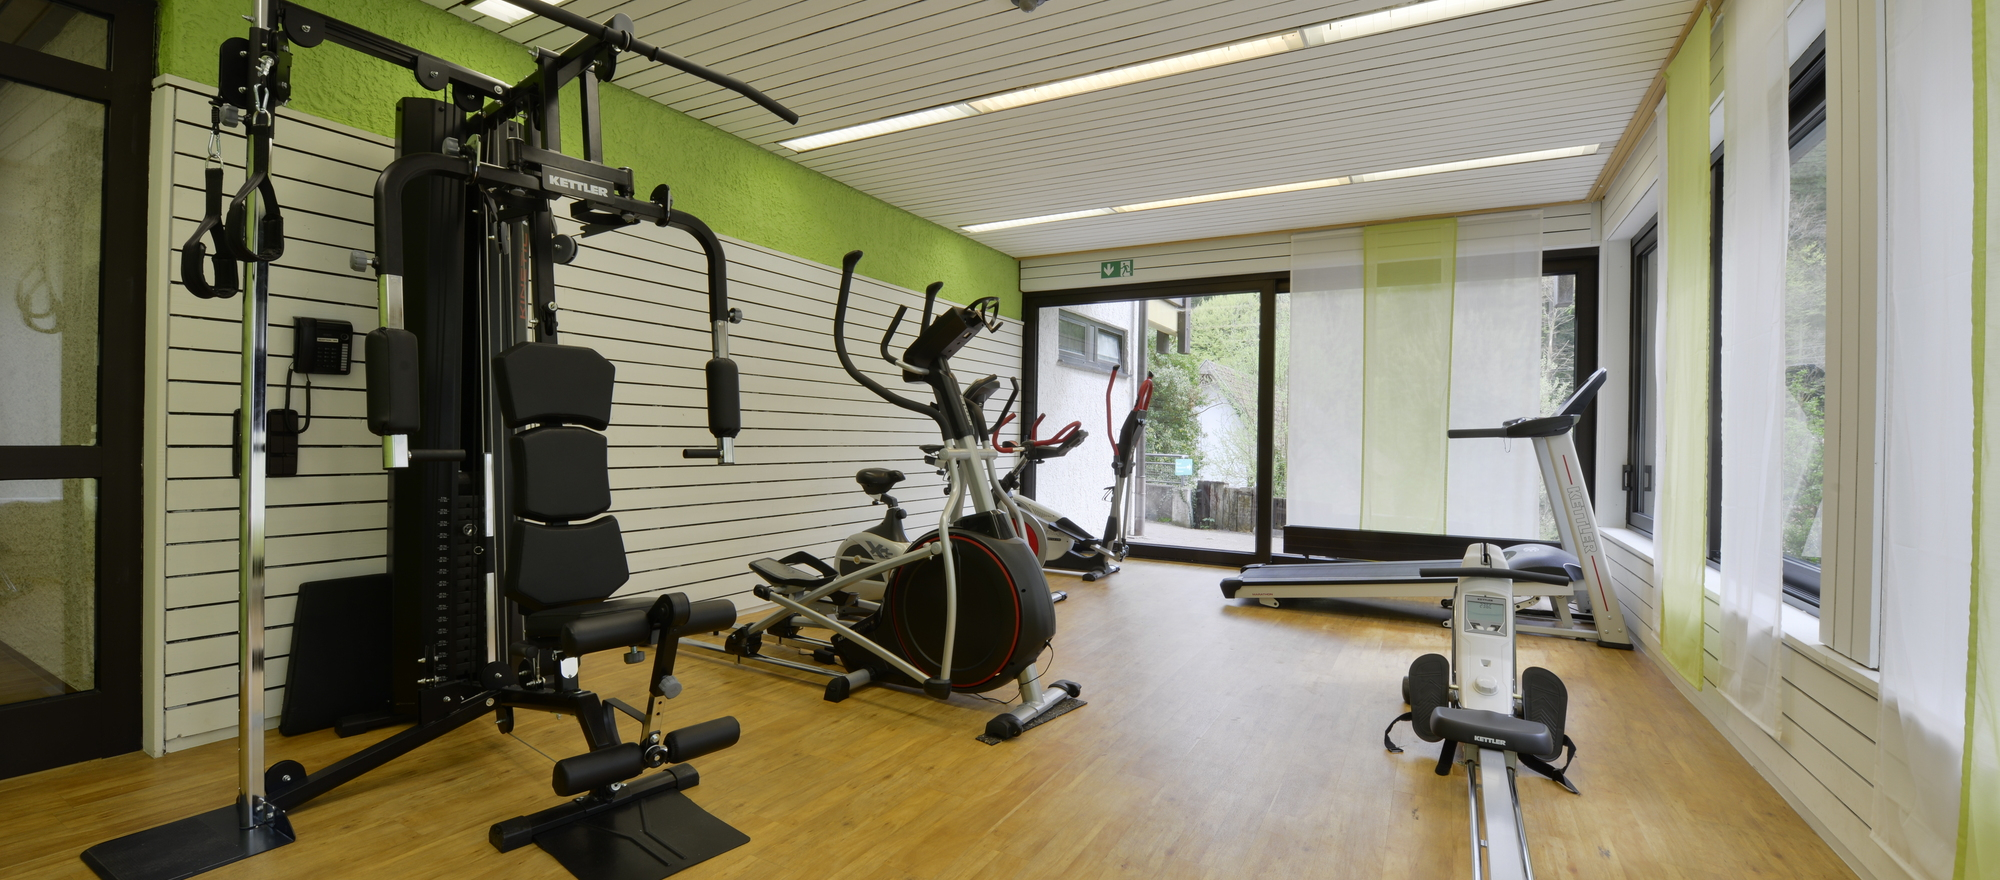 Keep fit at the 4-star Ringhotel Moenchs Waldhotel in Unterreichenbach